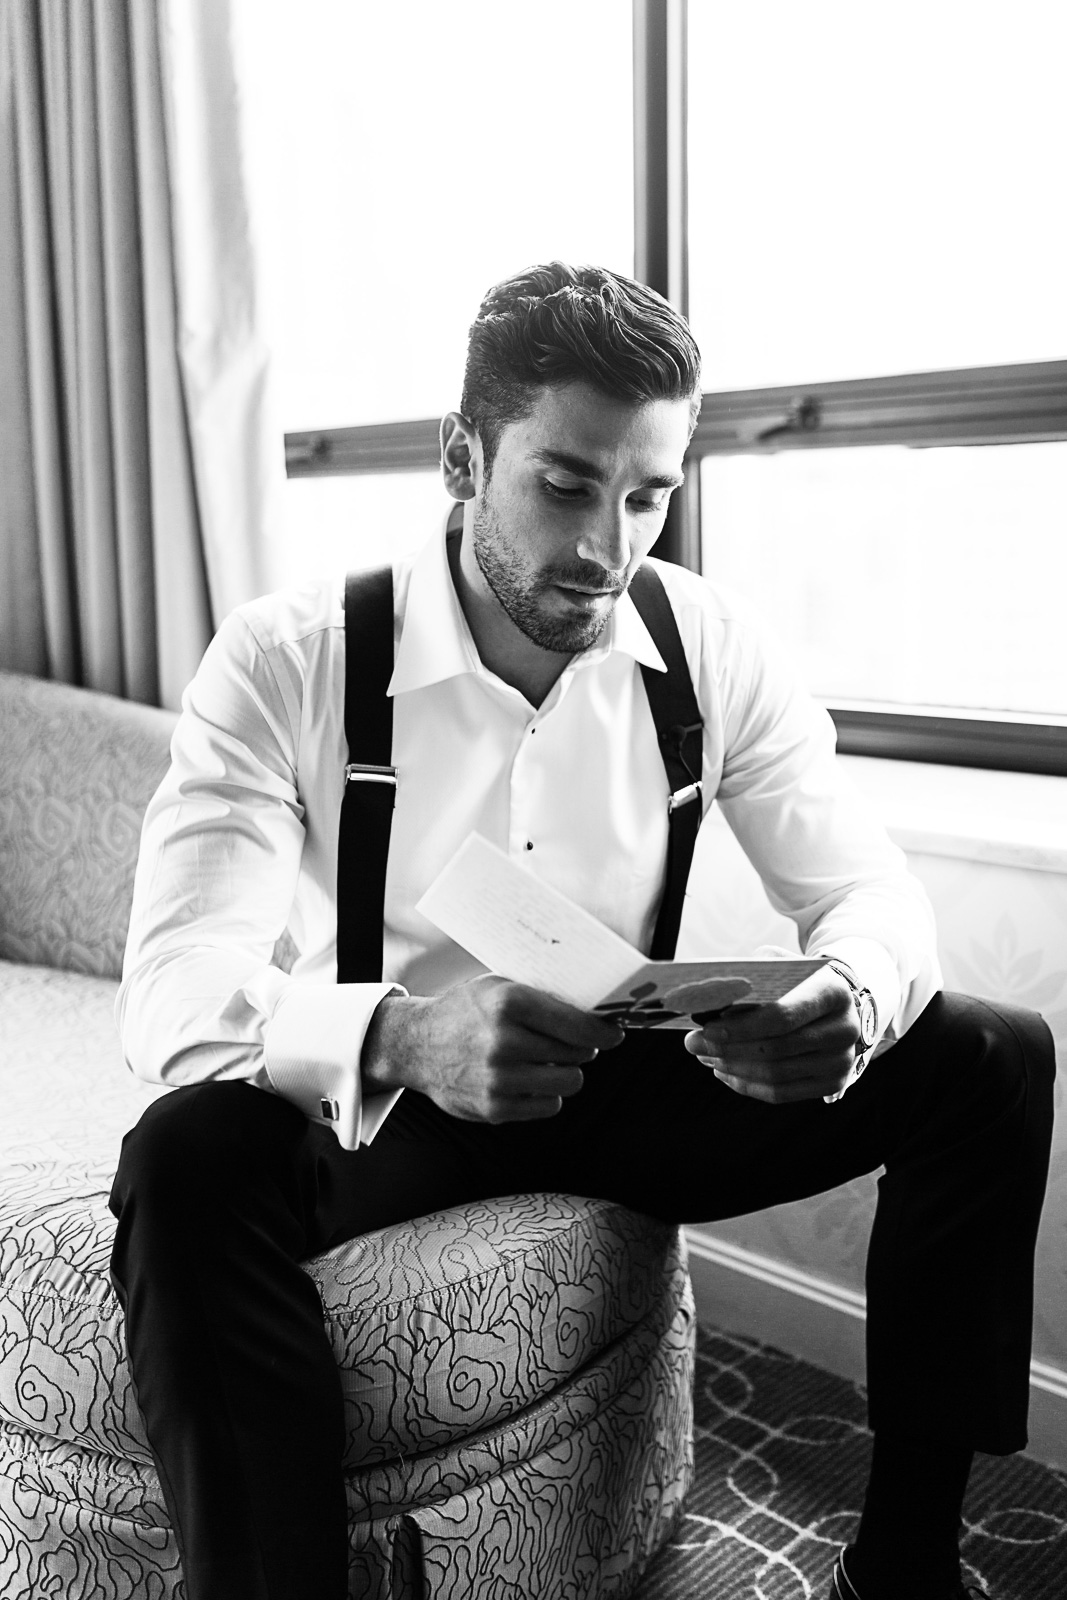 We photographed this groom reading a love note from his bride on the morning of their wedding as he got ready at the Ritz Carlton in the Gold Coast neighborhood of the city.